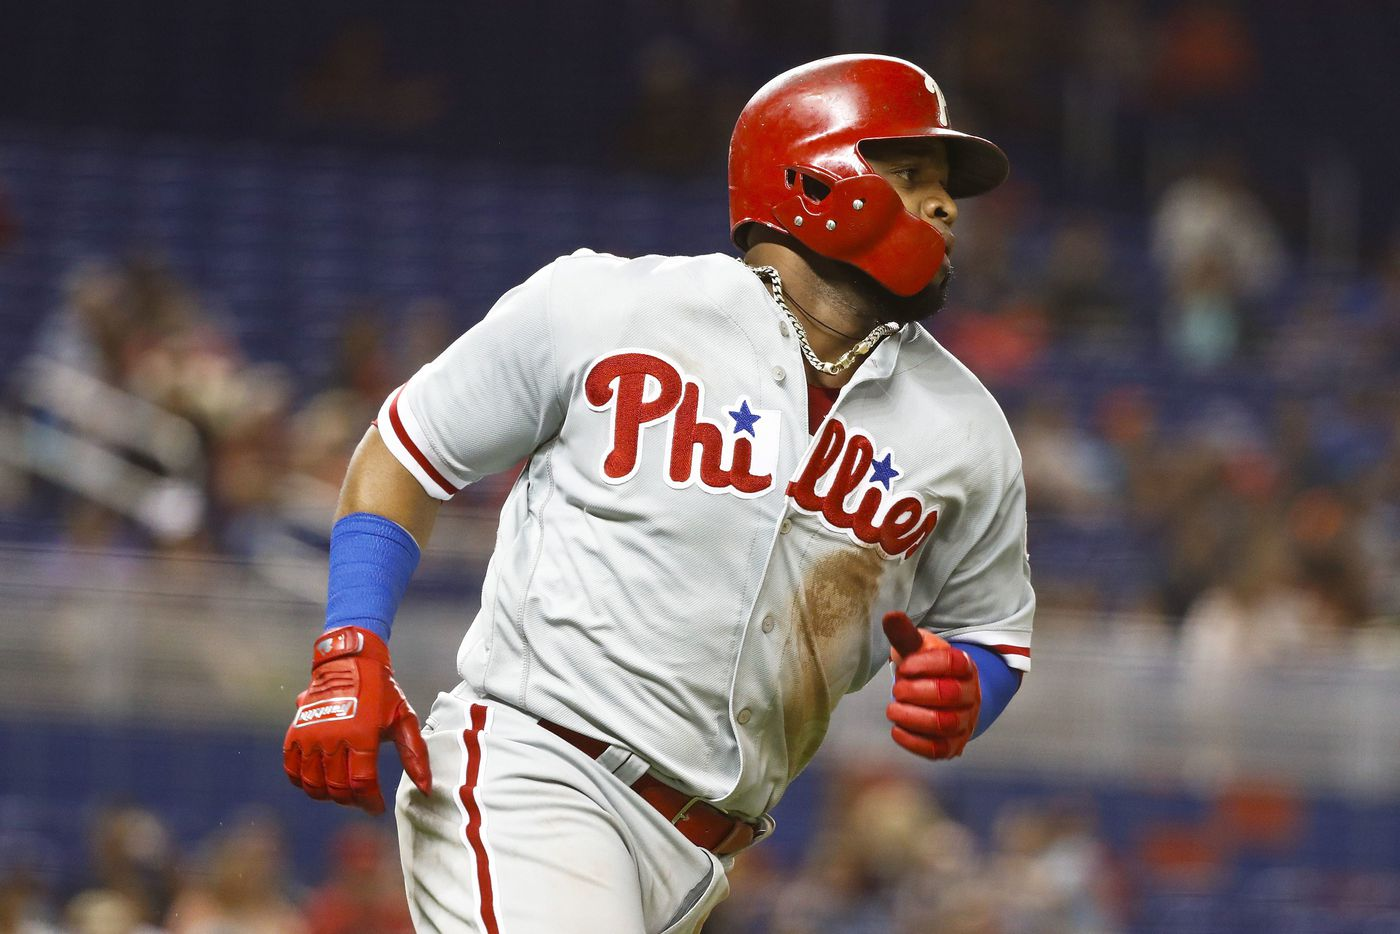 Slumping Phillies stinking like Fish right now   Extra Innings